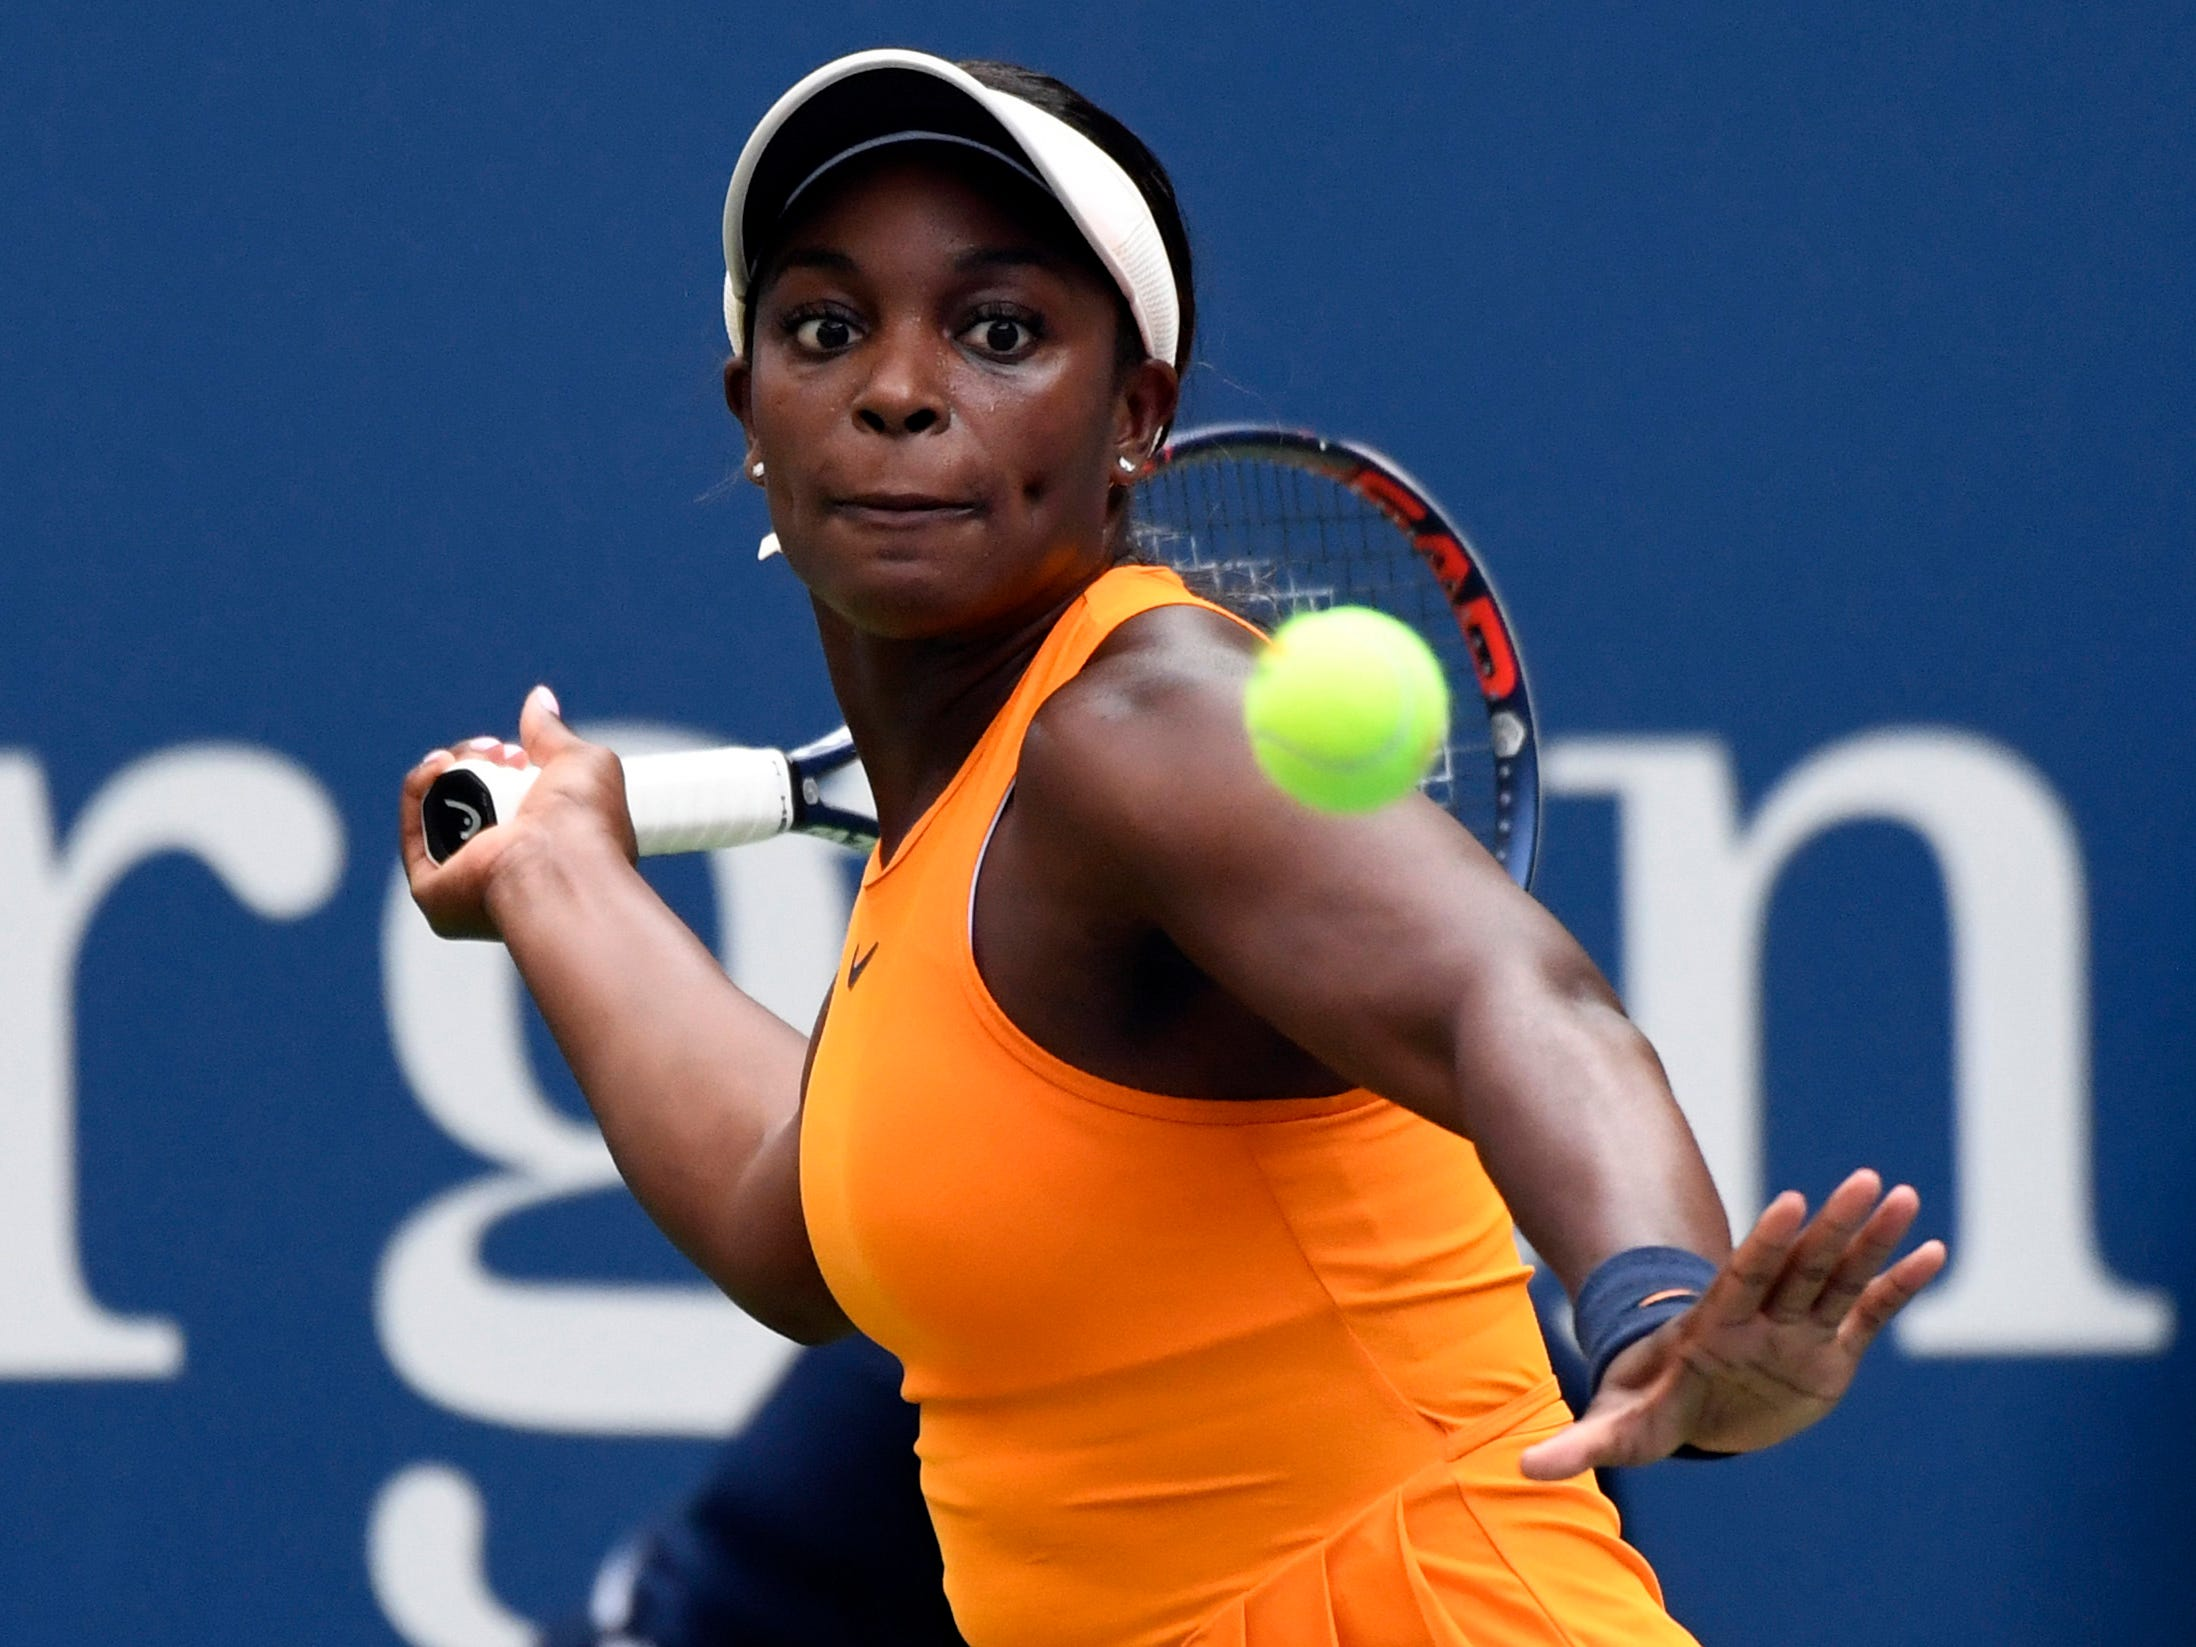 Defending champion Sloane Stephens of the USA lines up a forehand during her 6-1, 7-5 victory against Evgeniya Rodina of Russia to open defense of her title.